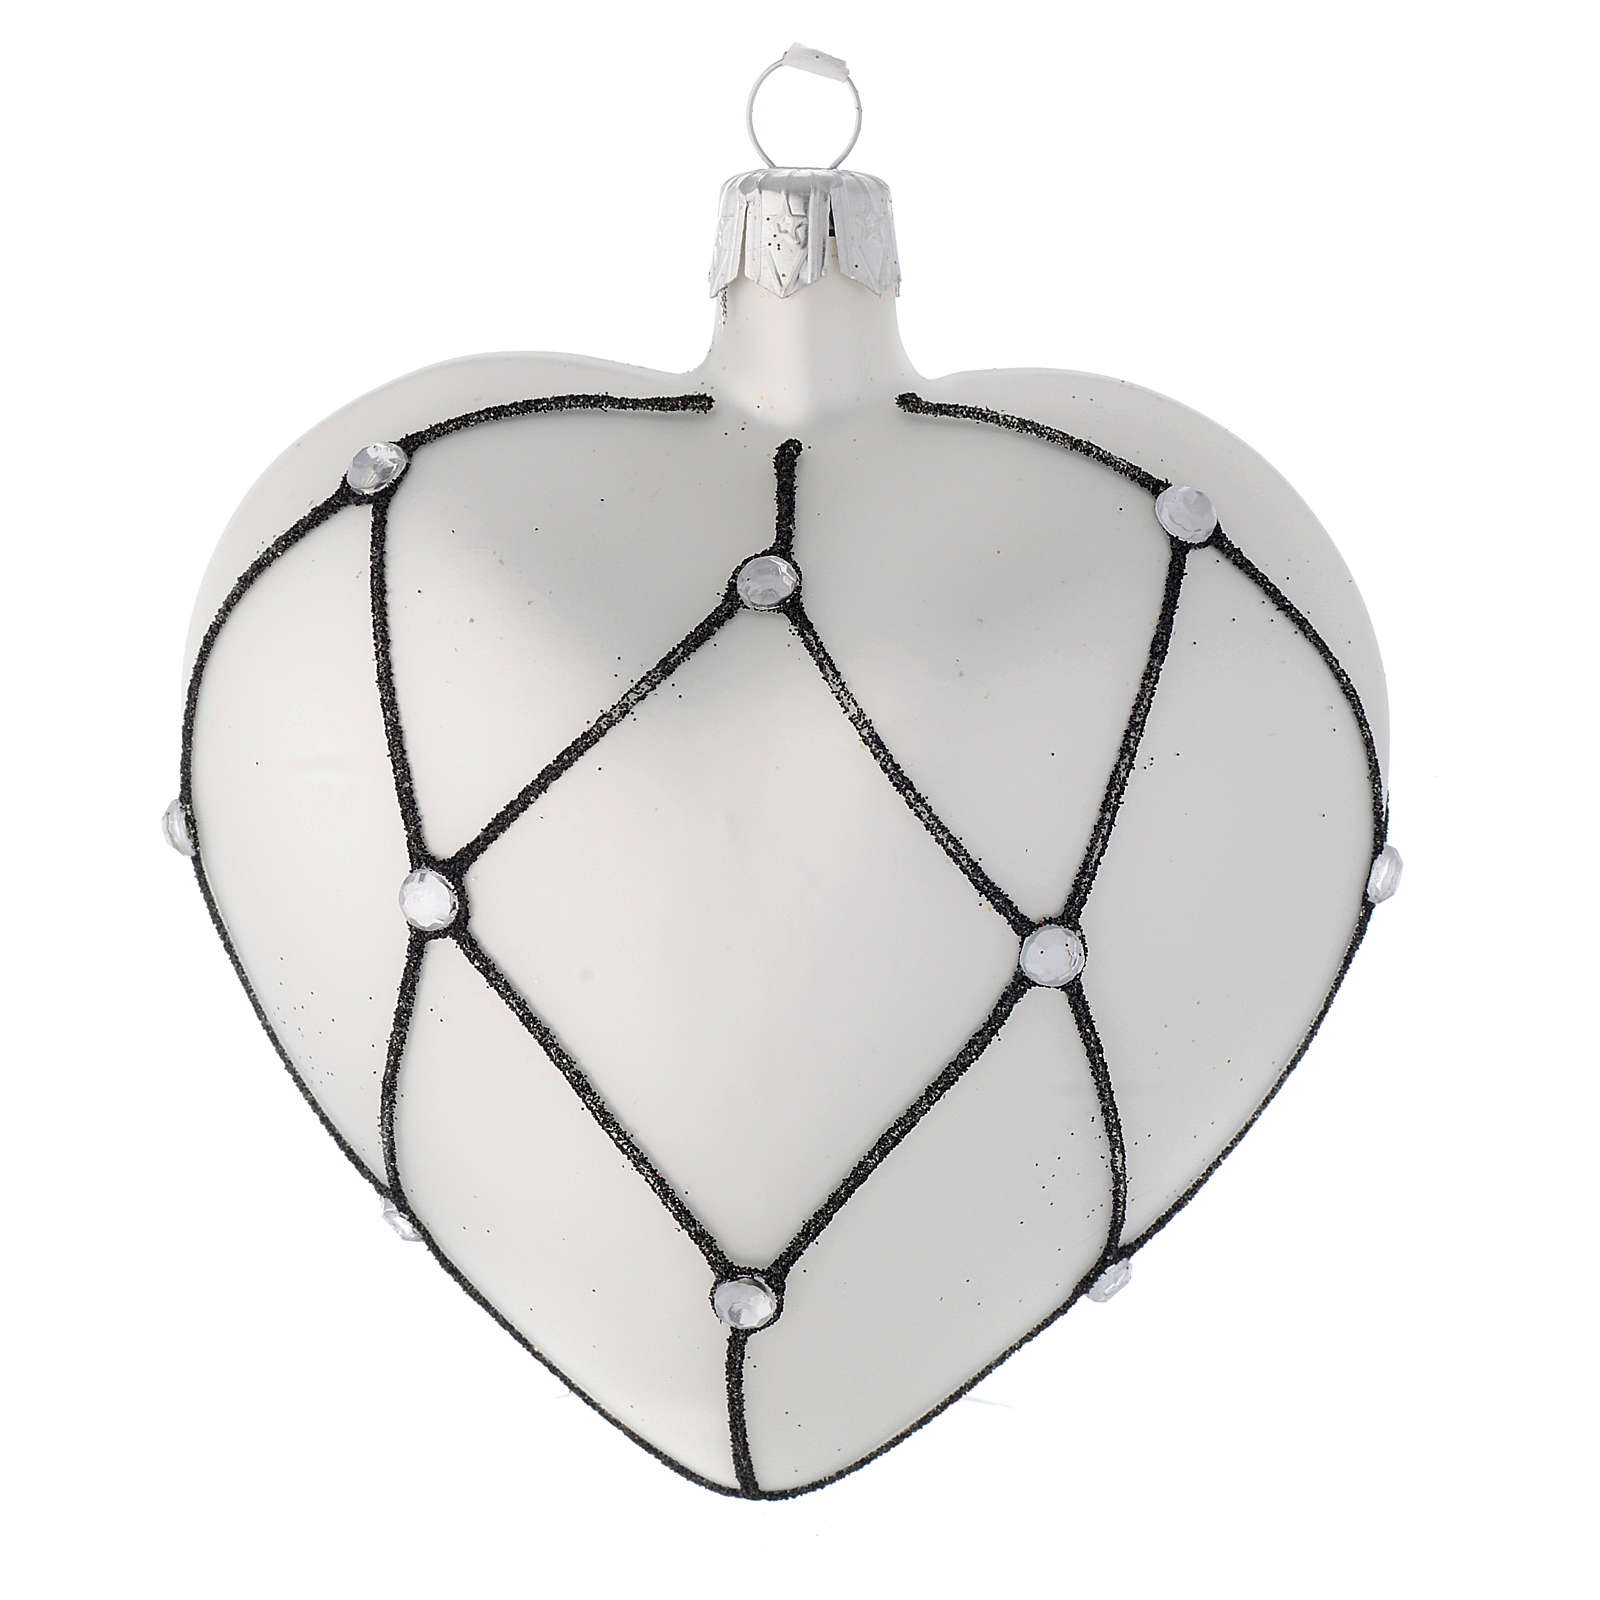 Heart Shaped bauble in white blown glass with black decoration 100mm 4